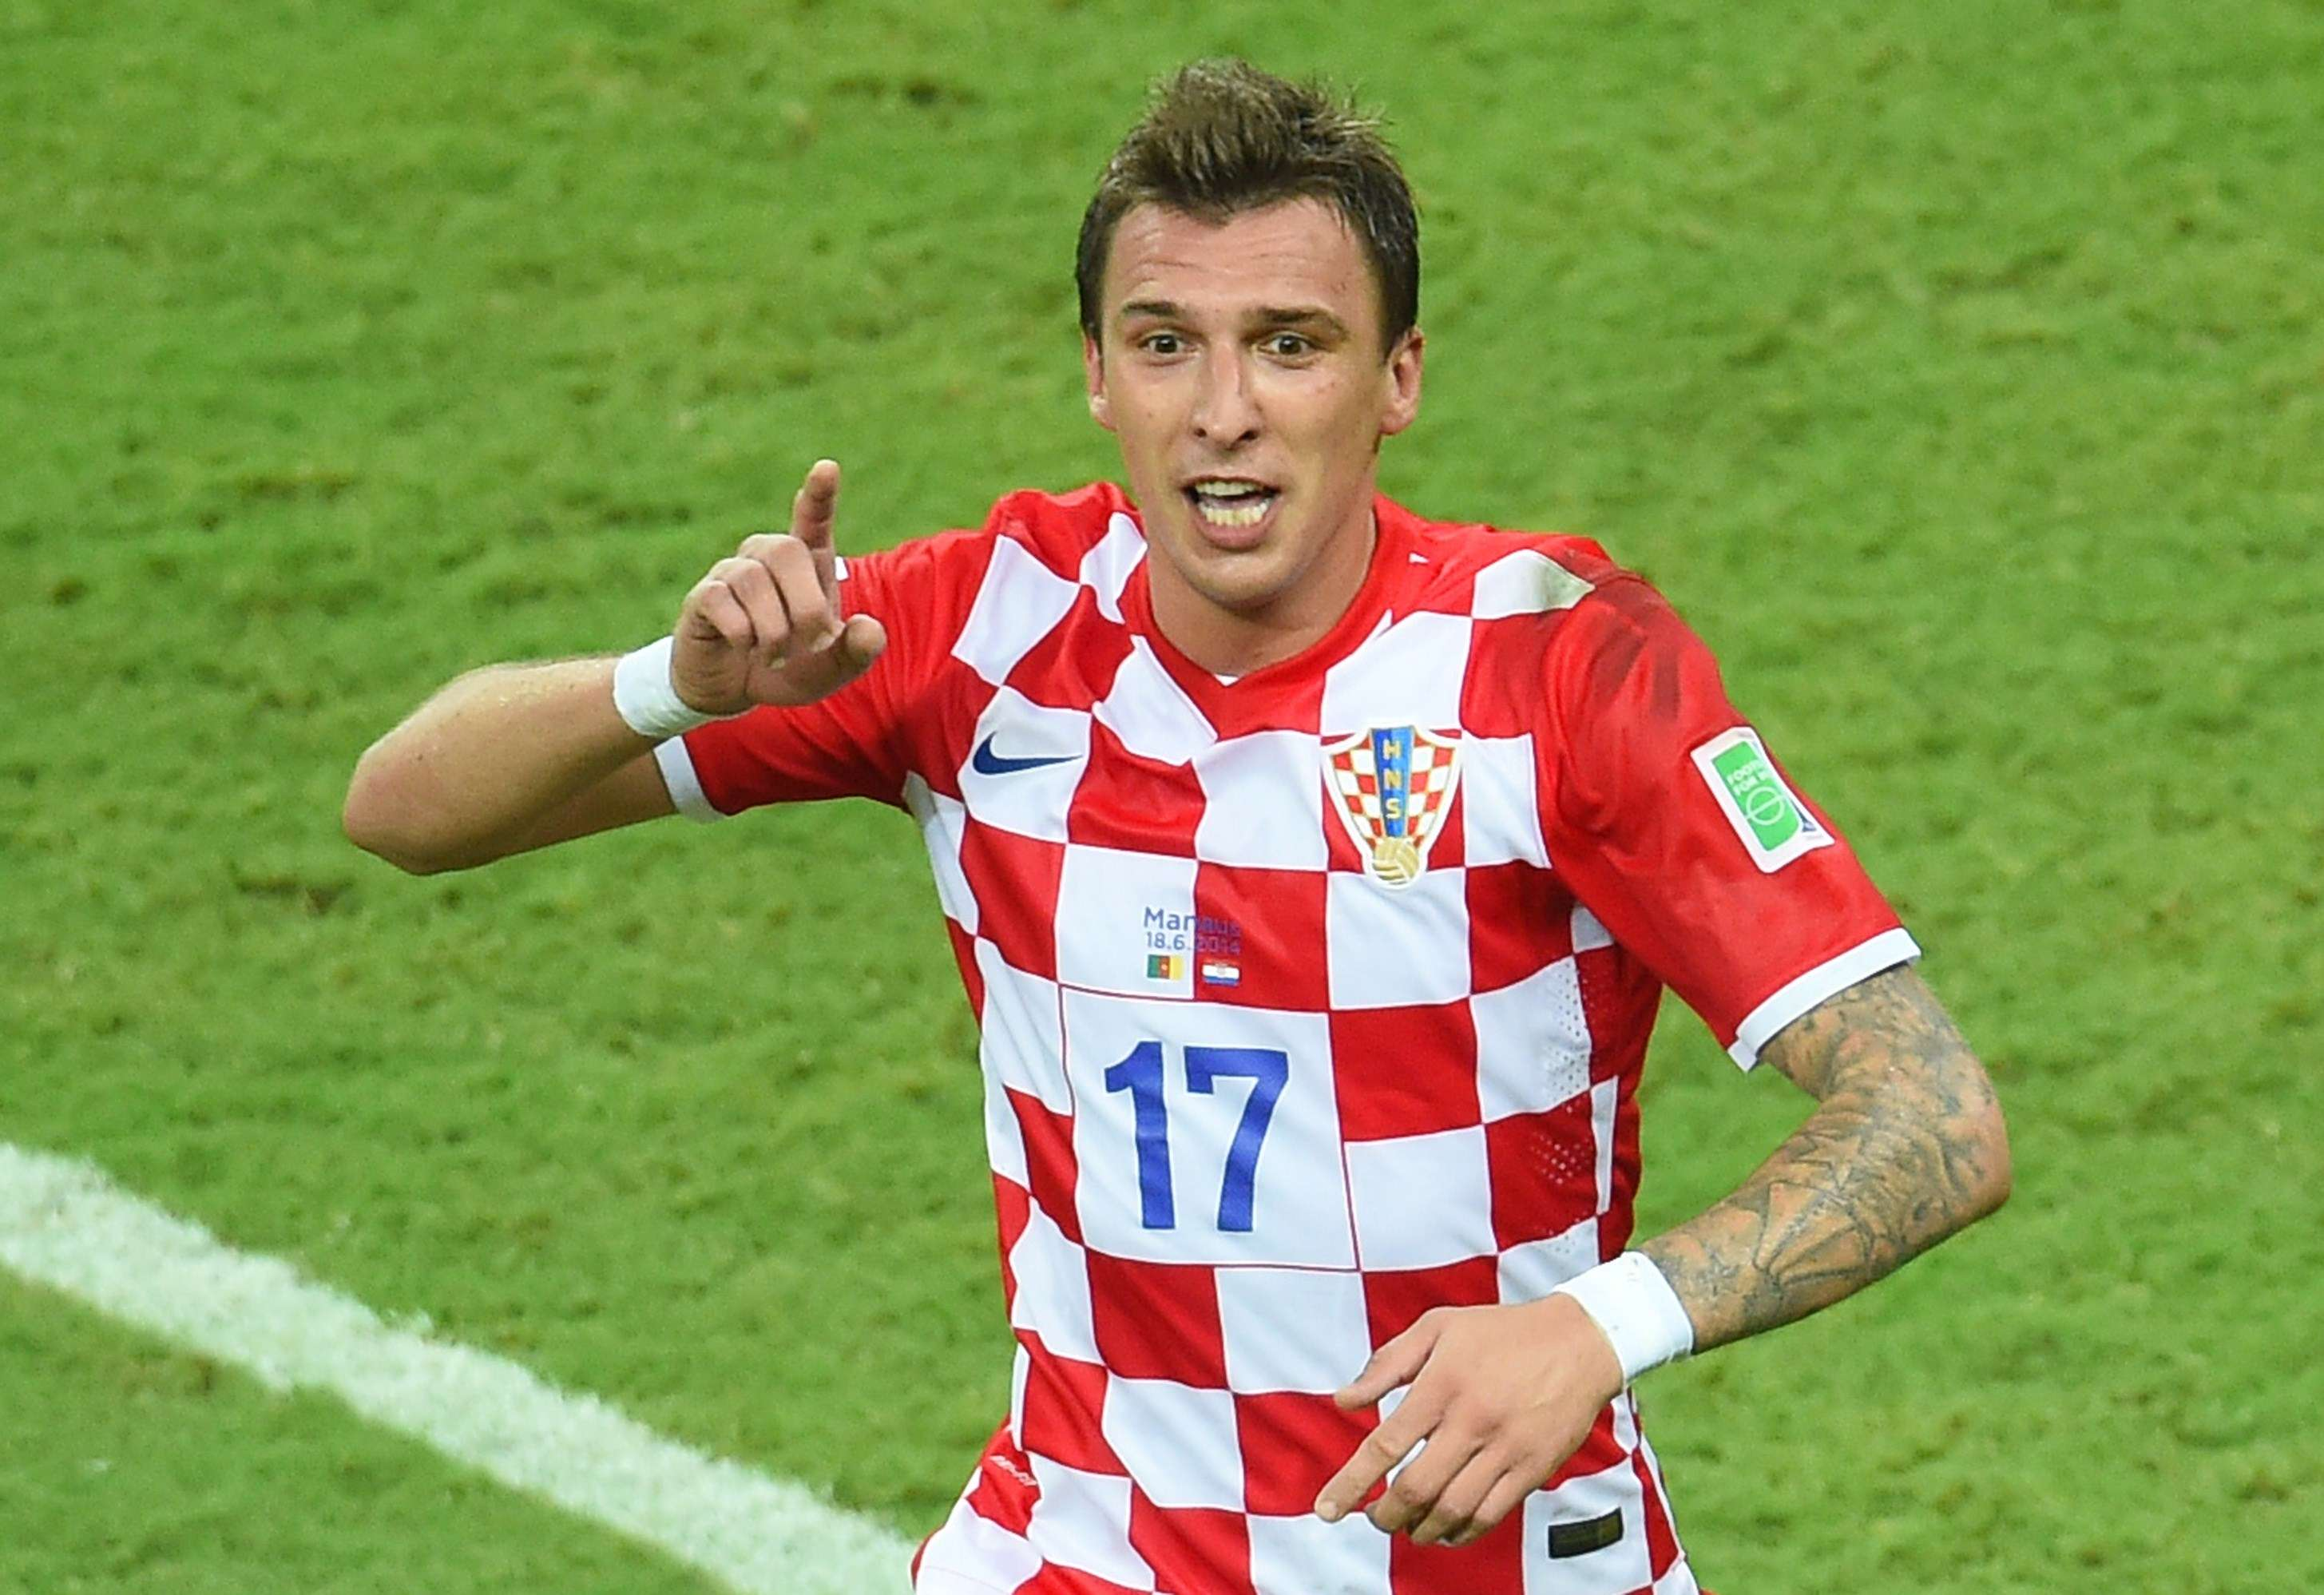 Mandzukic joins Atletico Madrid